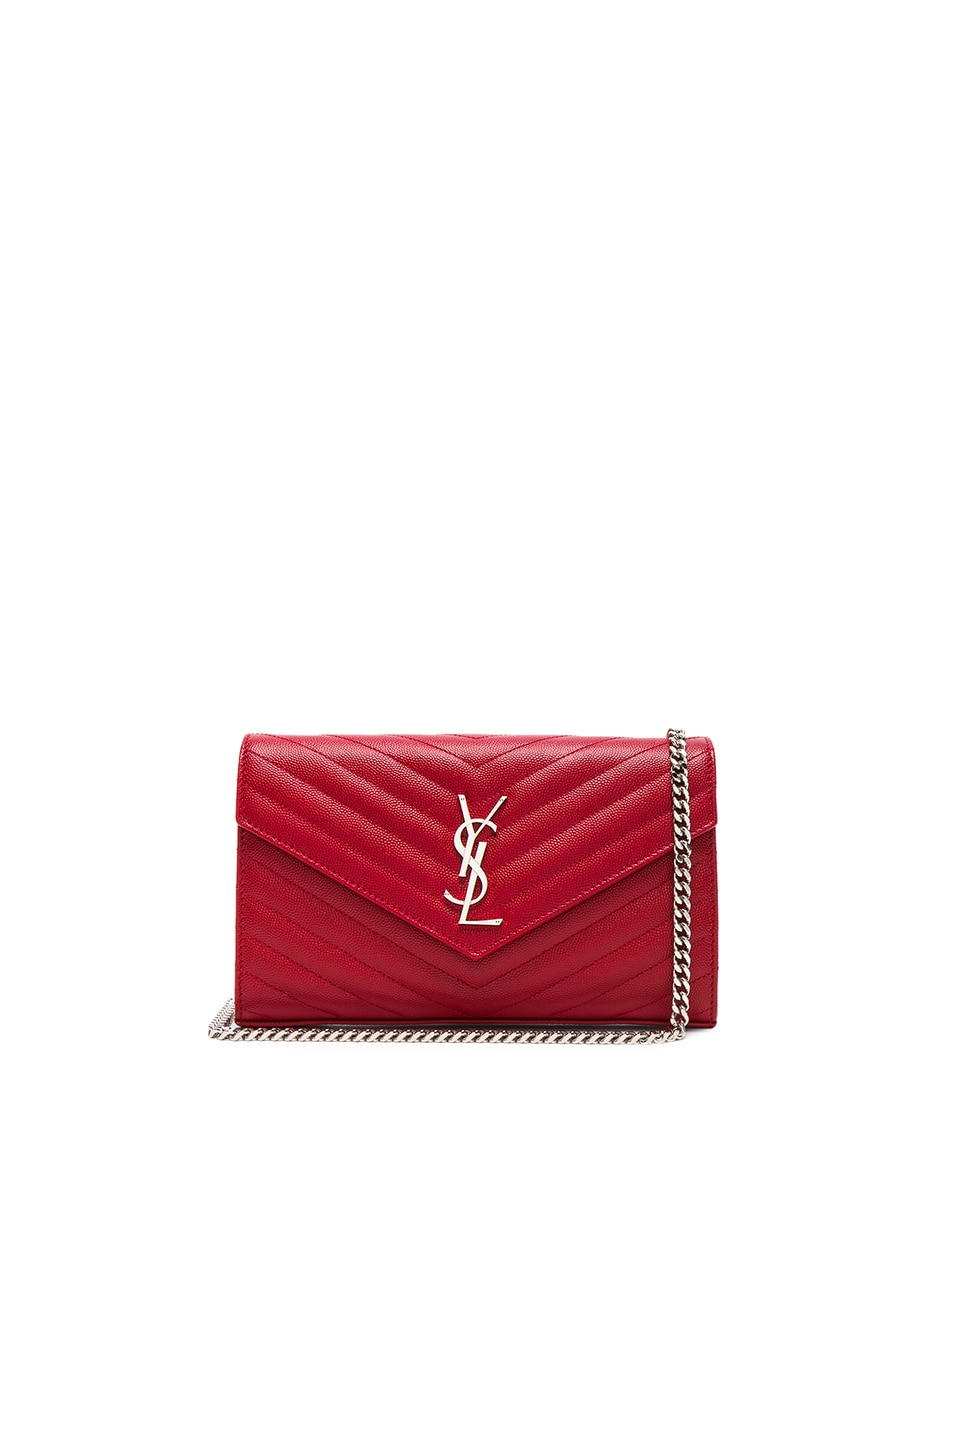 Image 1 of Saint Laurent Monogramme Chain Wallet in Eros Red